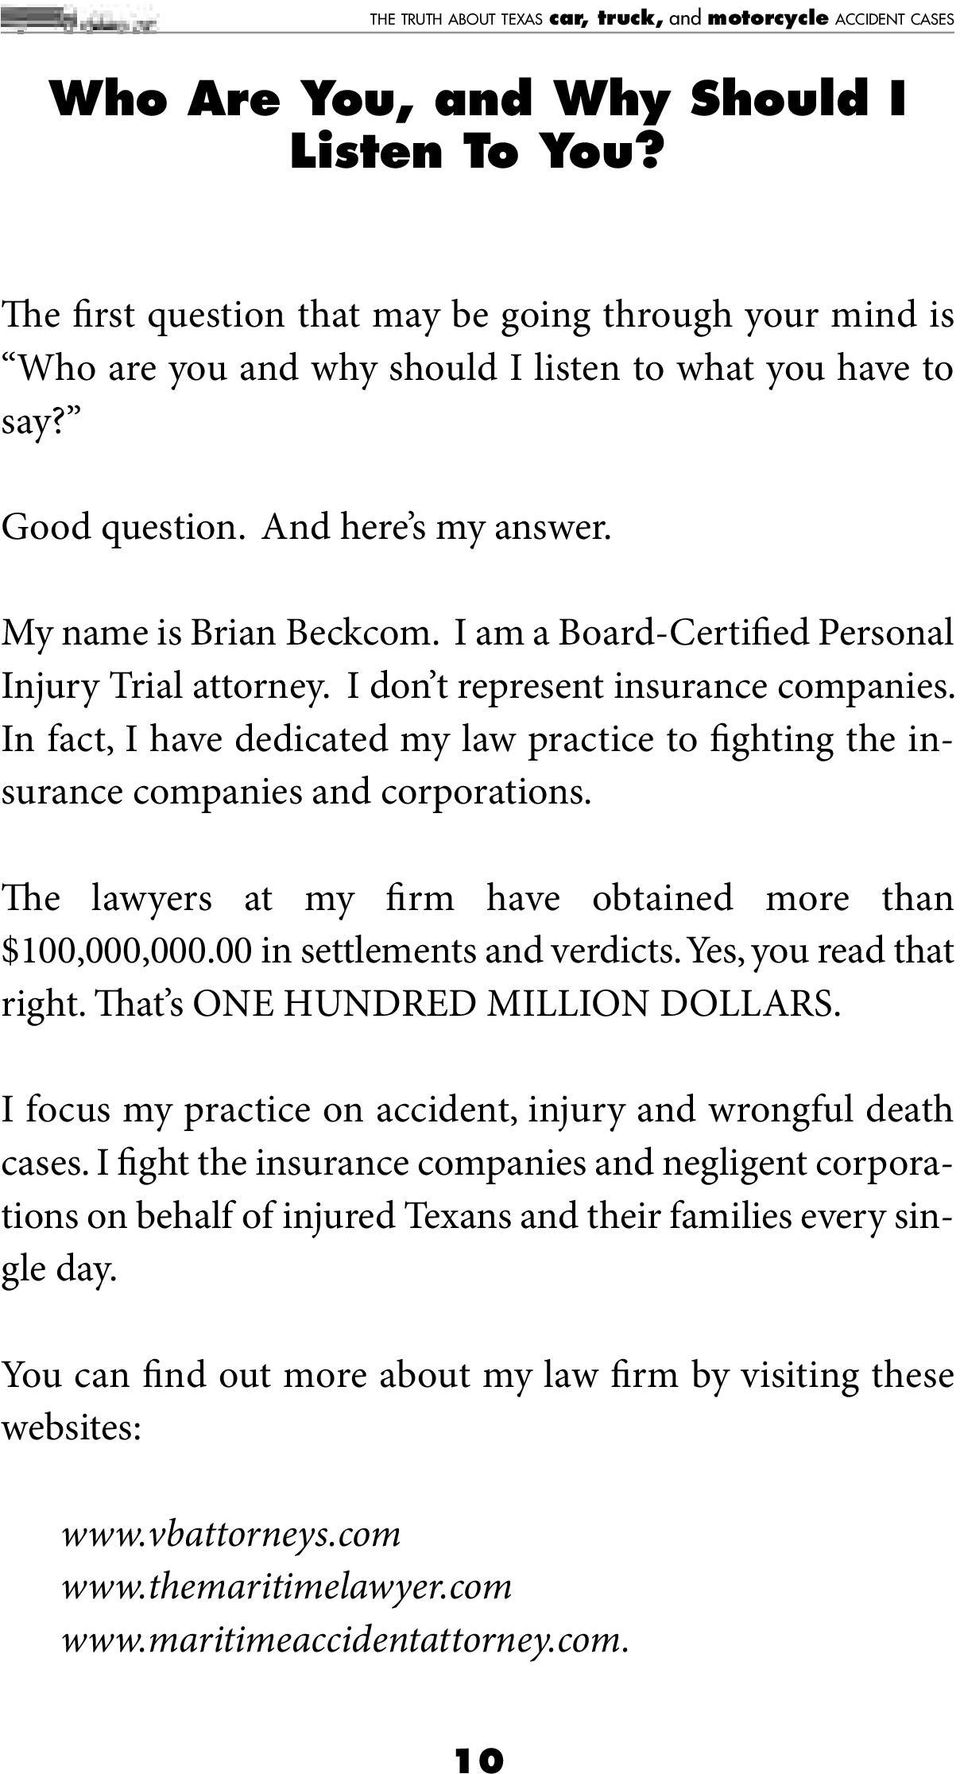 In fact, I have dedicated my law practice to fighting the insurance companies and corporations. e lawyers at my firm have obtained more than $100,000,000.00 in settlements and verdicts.